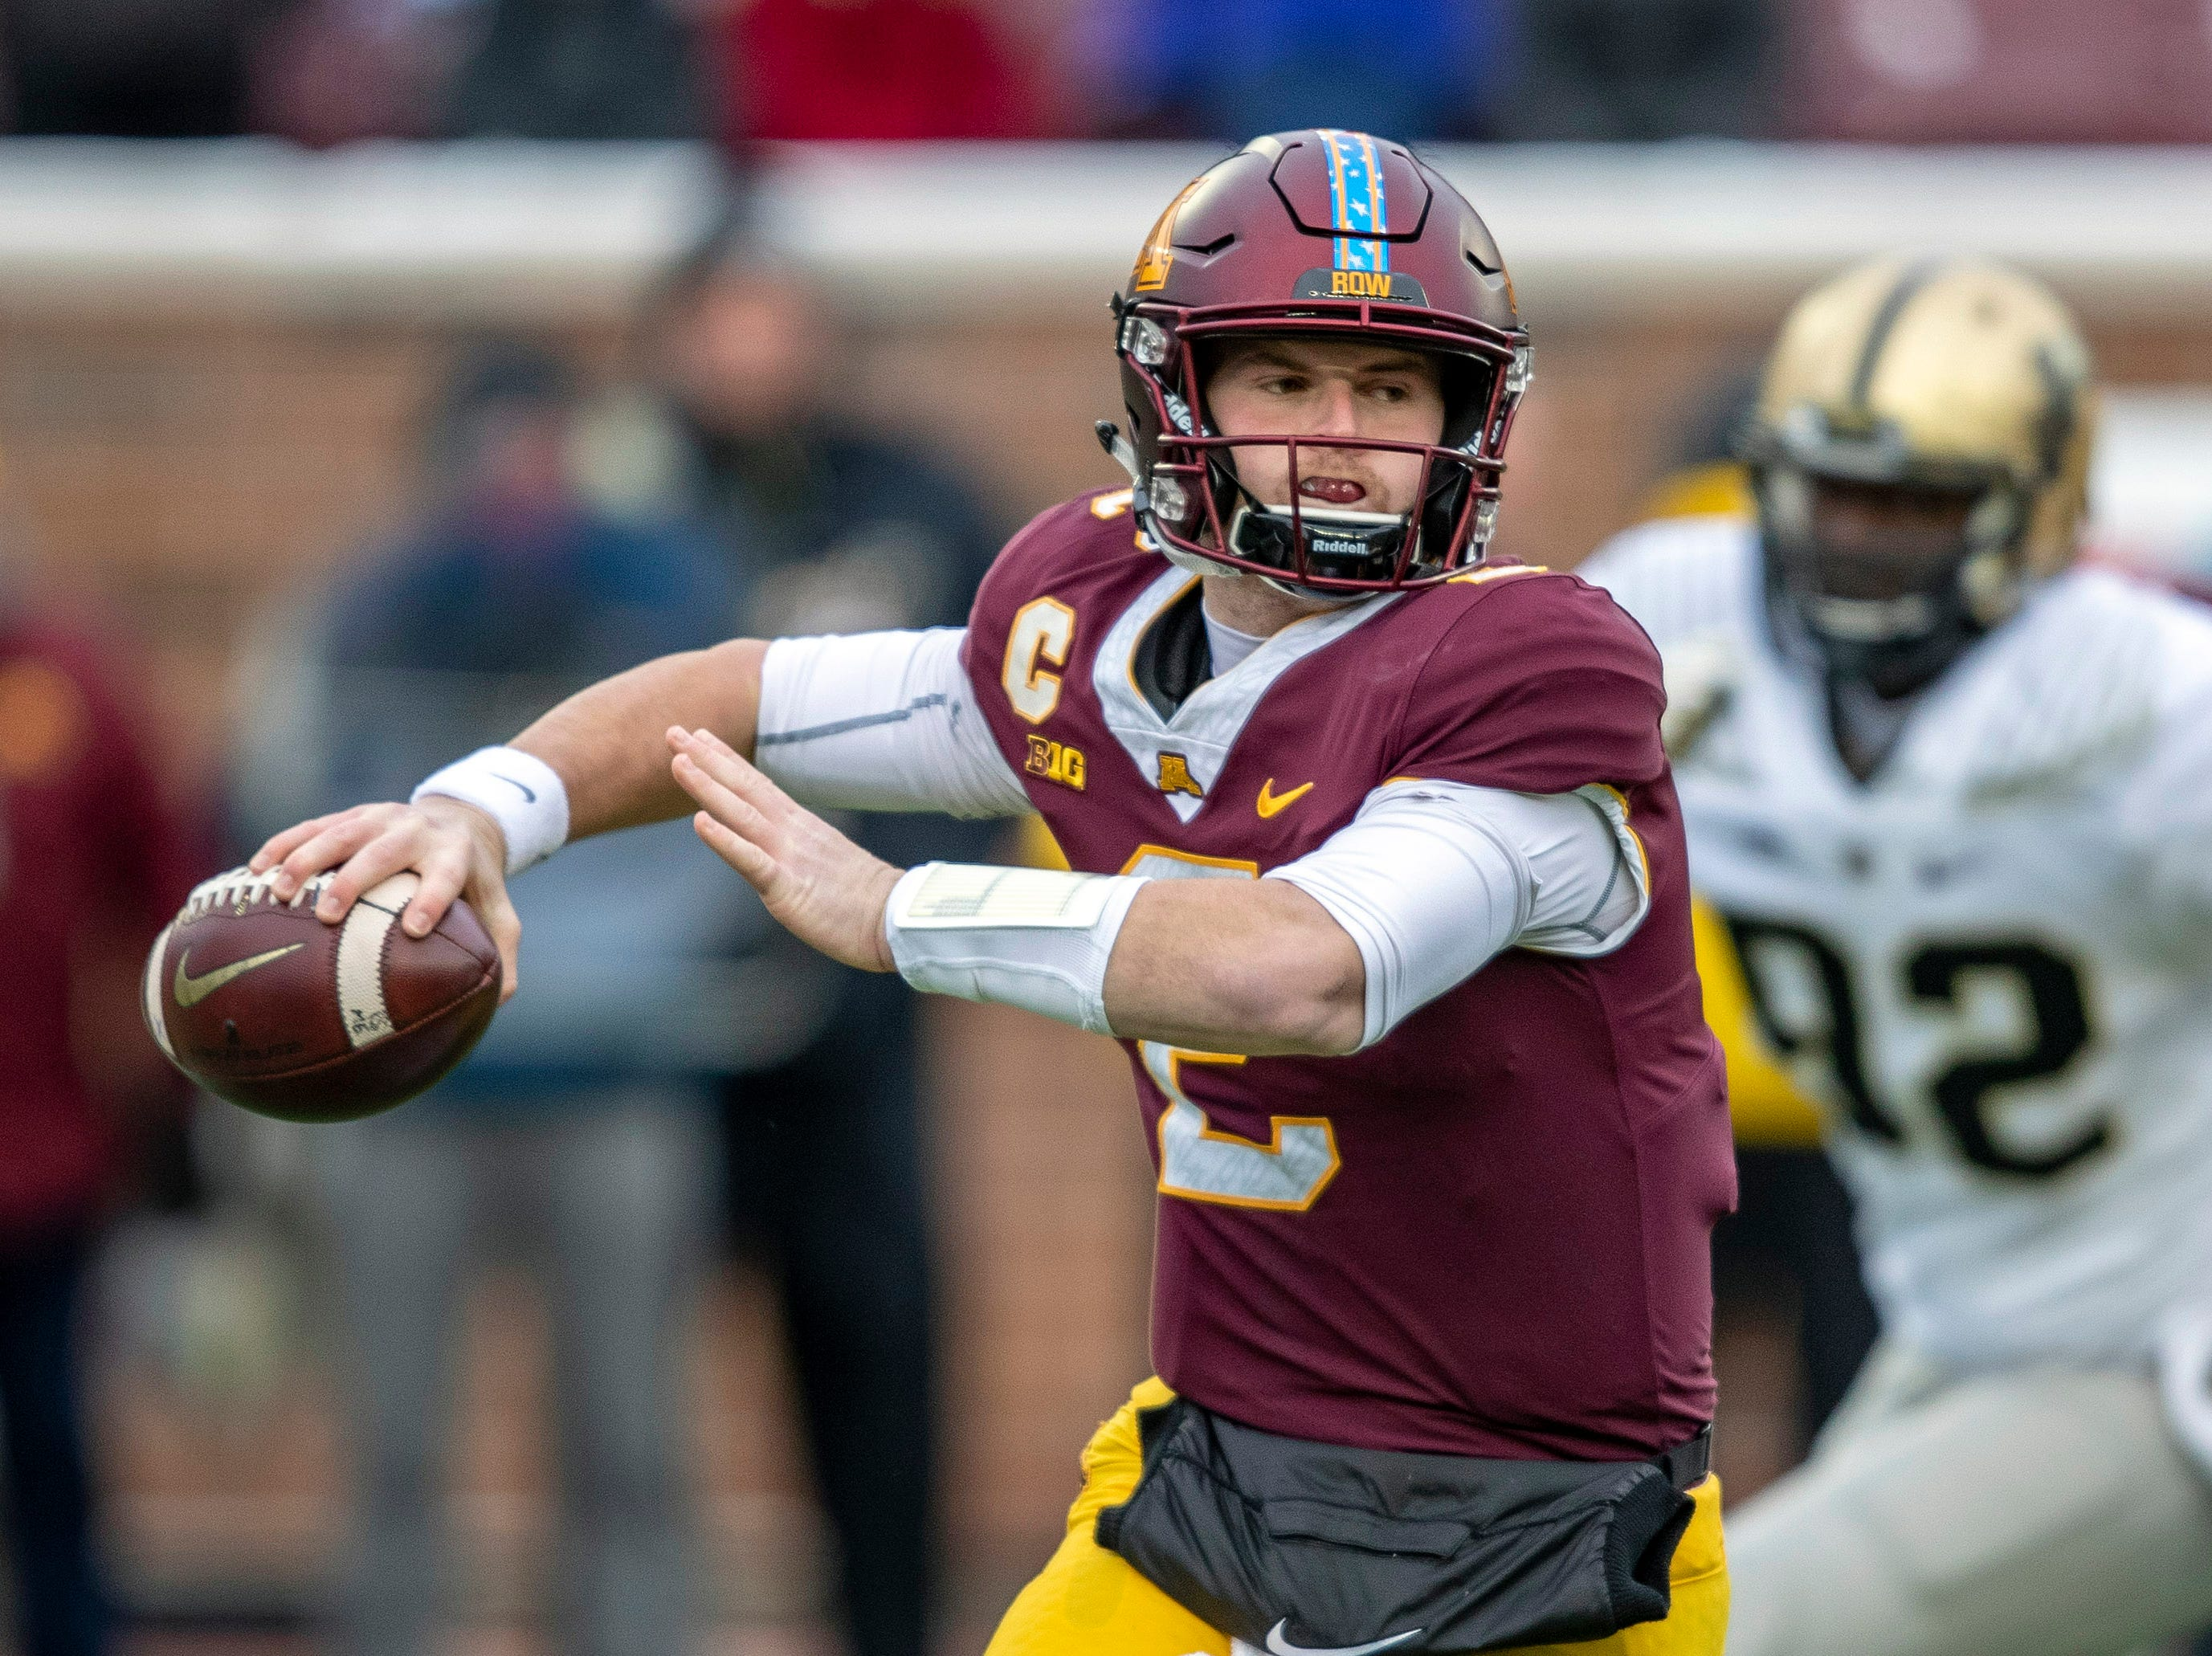 Nov 10, 2018; Minneapolis, MN, USA; Minnesota Golden Gophers quarterback Tanner Morgan (2) drops back for a pass in the first quarter against the Purdue Boilermakers at TCF Bank Stadium. Mandatory Credit: Jesse Johnson-USA TODAY Sports